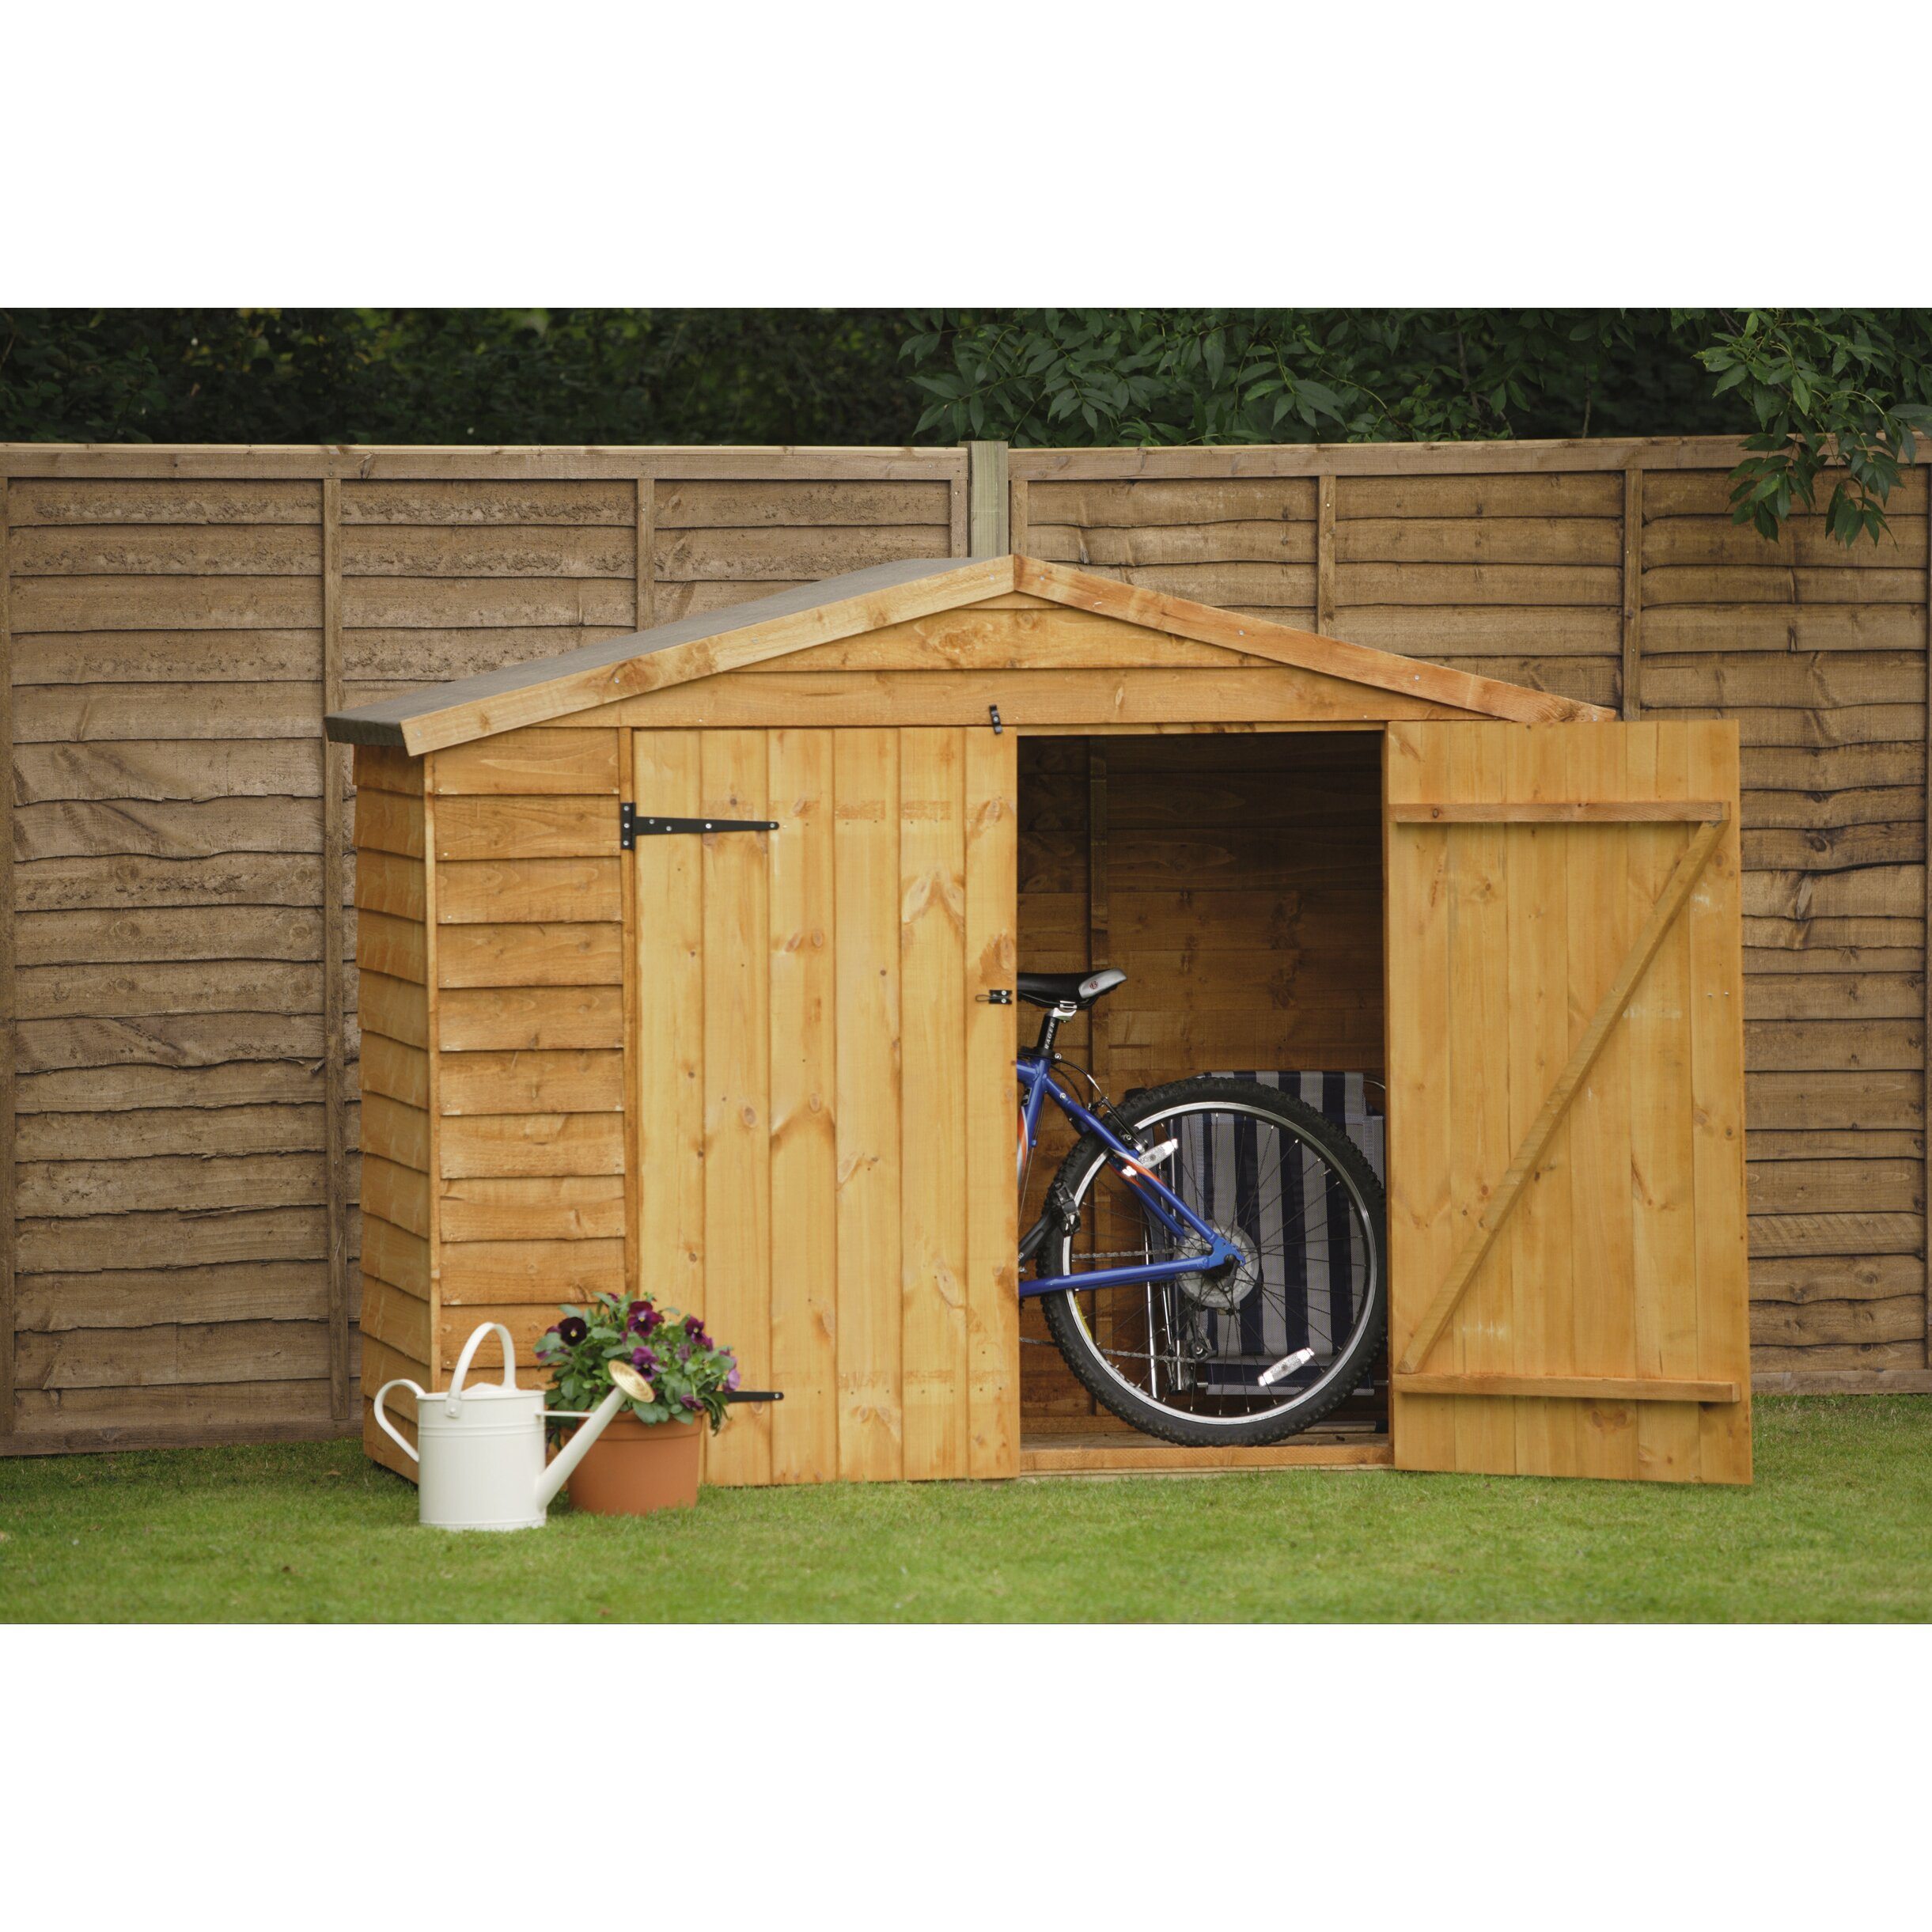 forest garden 6 x 3 wooden bike shed reviews wayfair uk. Black Bedroom Furniture Sets. Home Design Ideas